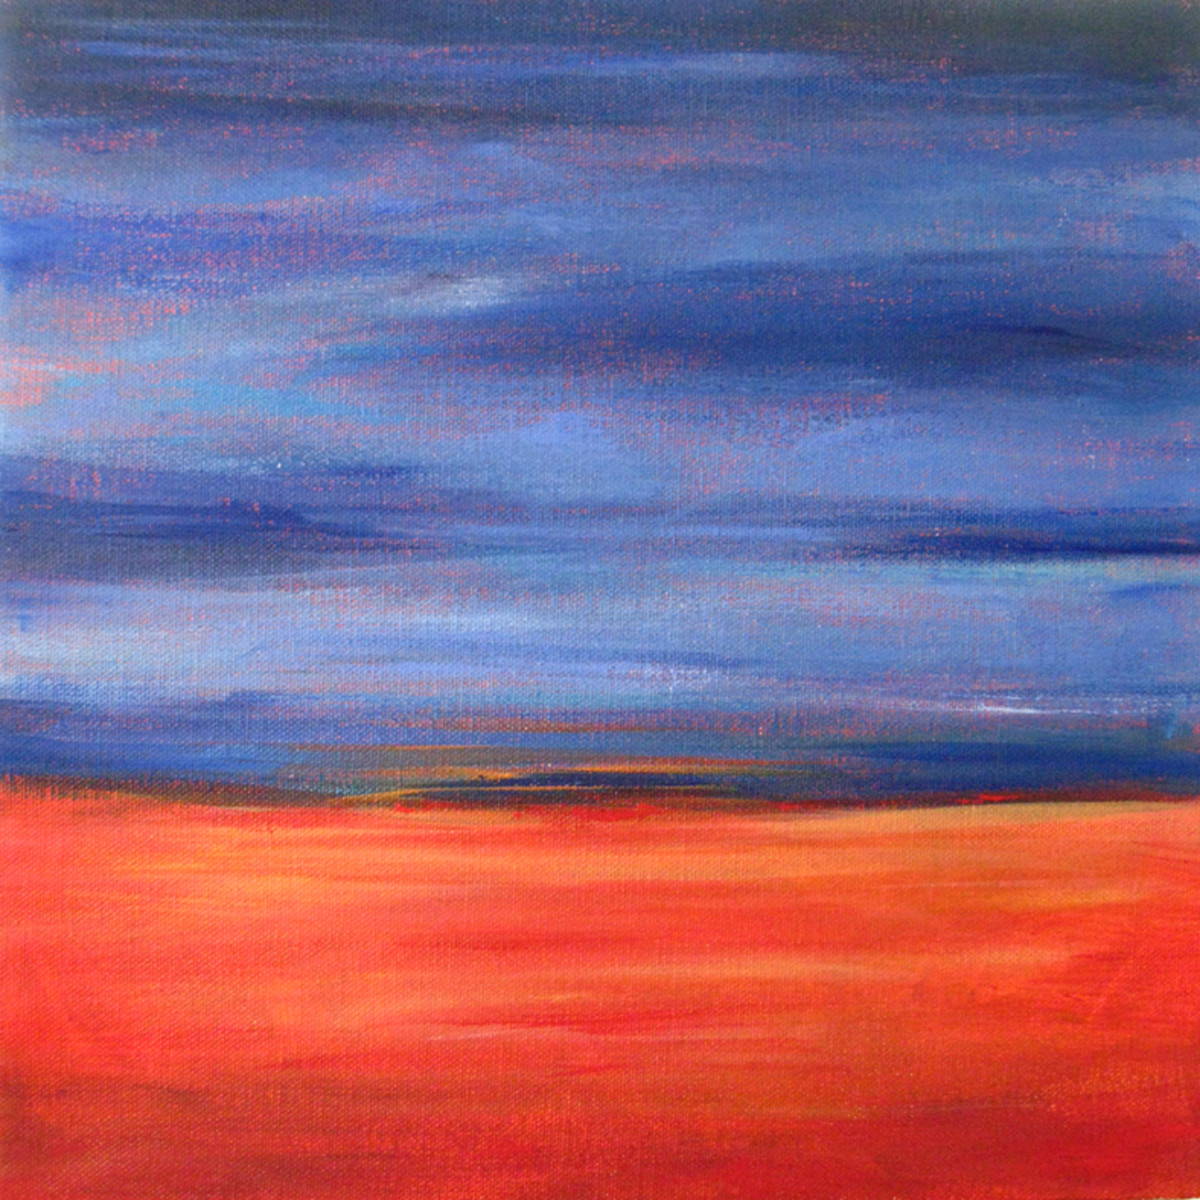 Abstract landscape - For the ground I used Burnt Sienna, Raw Sienna, Hansa Yellow Light, Naphtol Red Medium, and Titanium White. For the sky I used Ultramarine Blue, Cerulean Blue, and Titanium White.